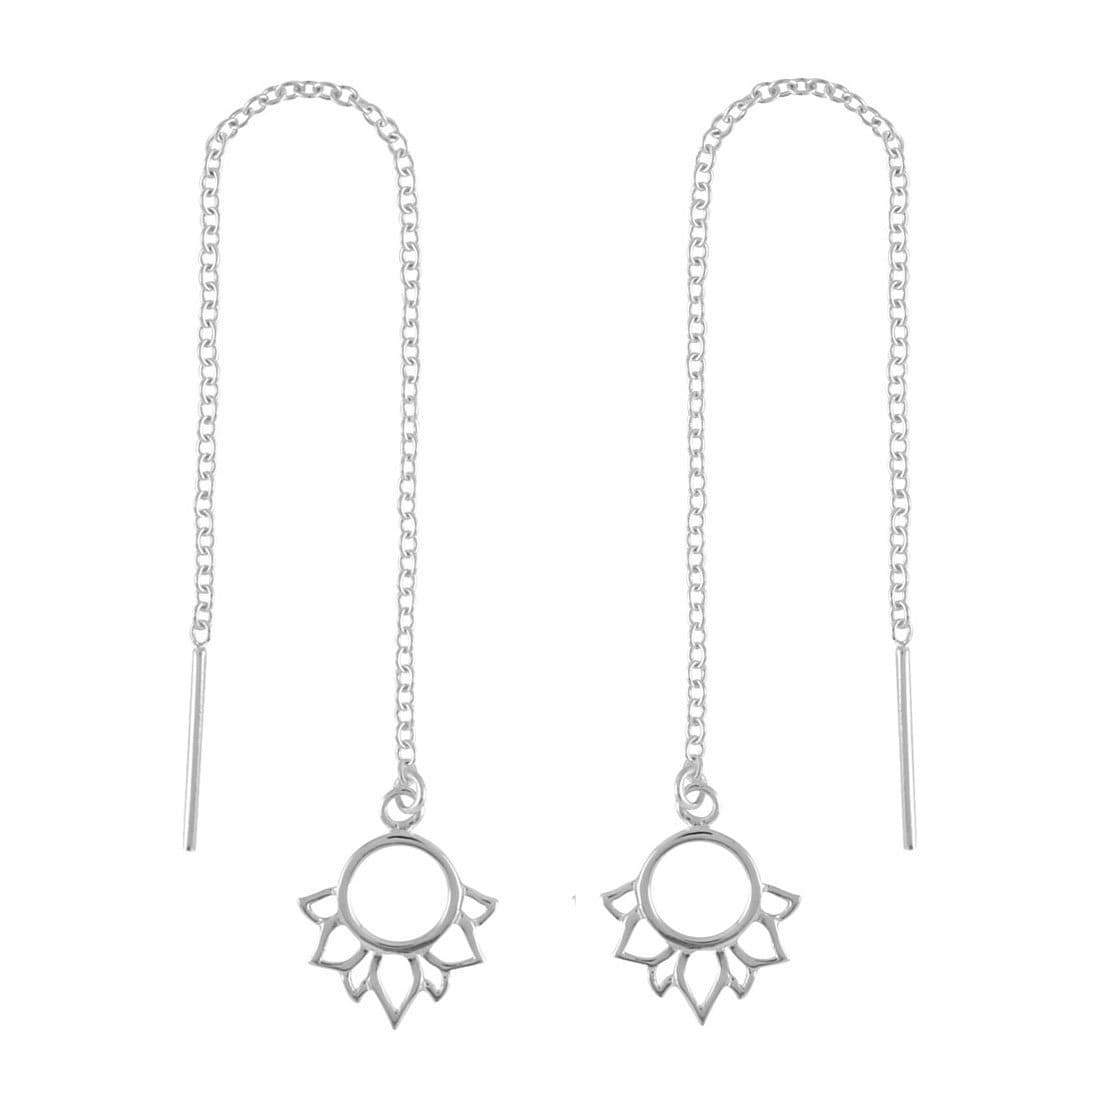 Midsummer Star Earrings Lotus Threaders